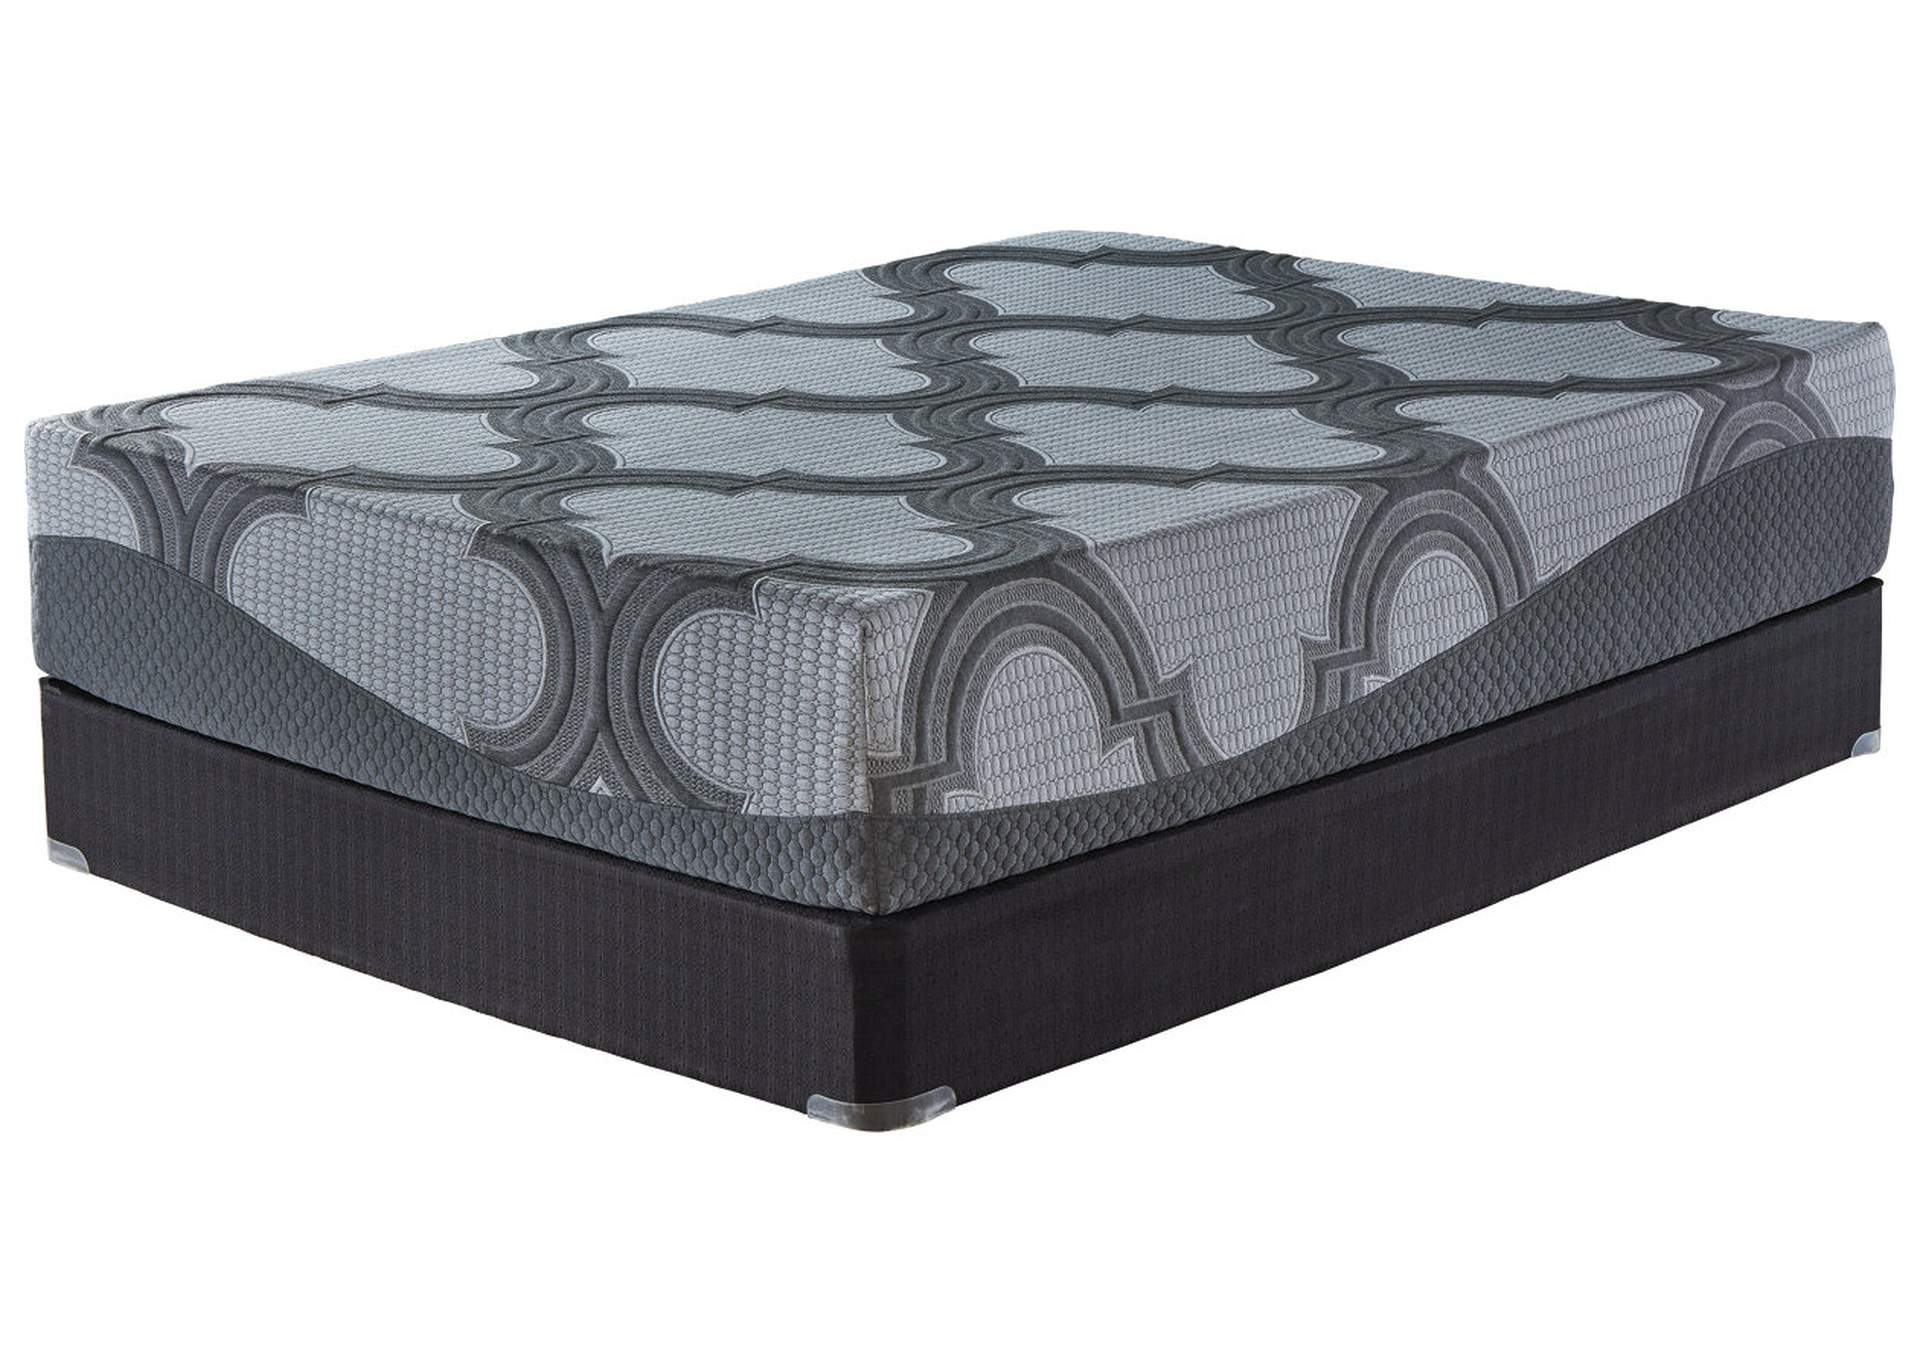 12 Inch Ashley Hybrid Gray King Mattress,Sierra Sleep by Ashley